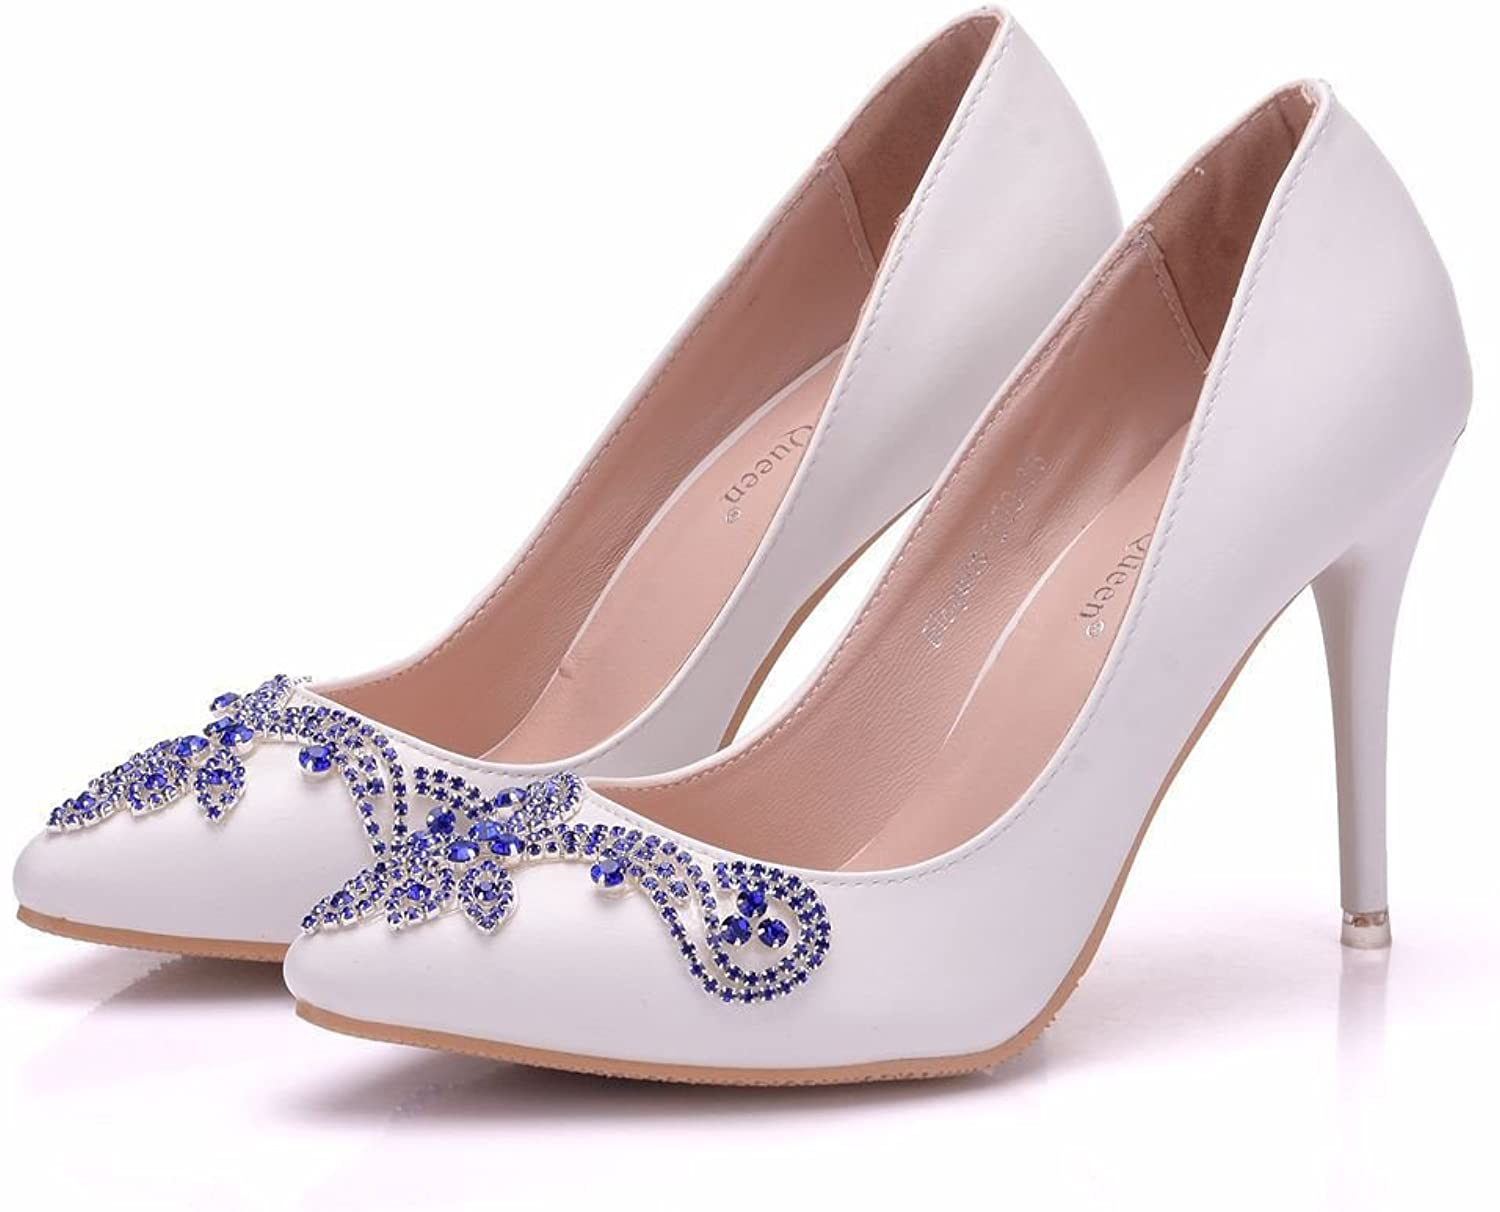 HYP Wedding Women shoes Wedding shoes Women Pumps Closed Toe Wedding Party Court shoes Bridesmaid Bridal shoes High-Heeled fine Drill with Water.